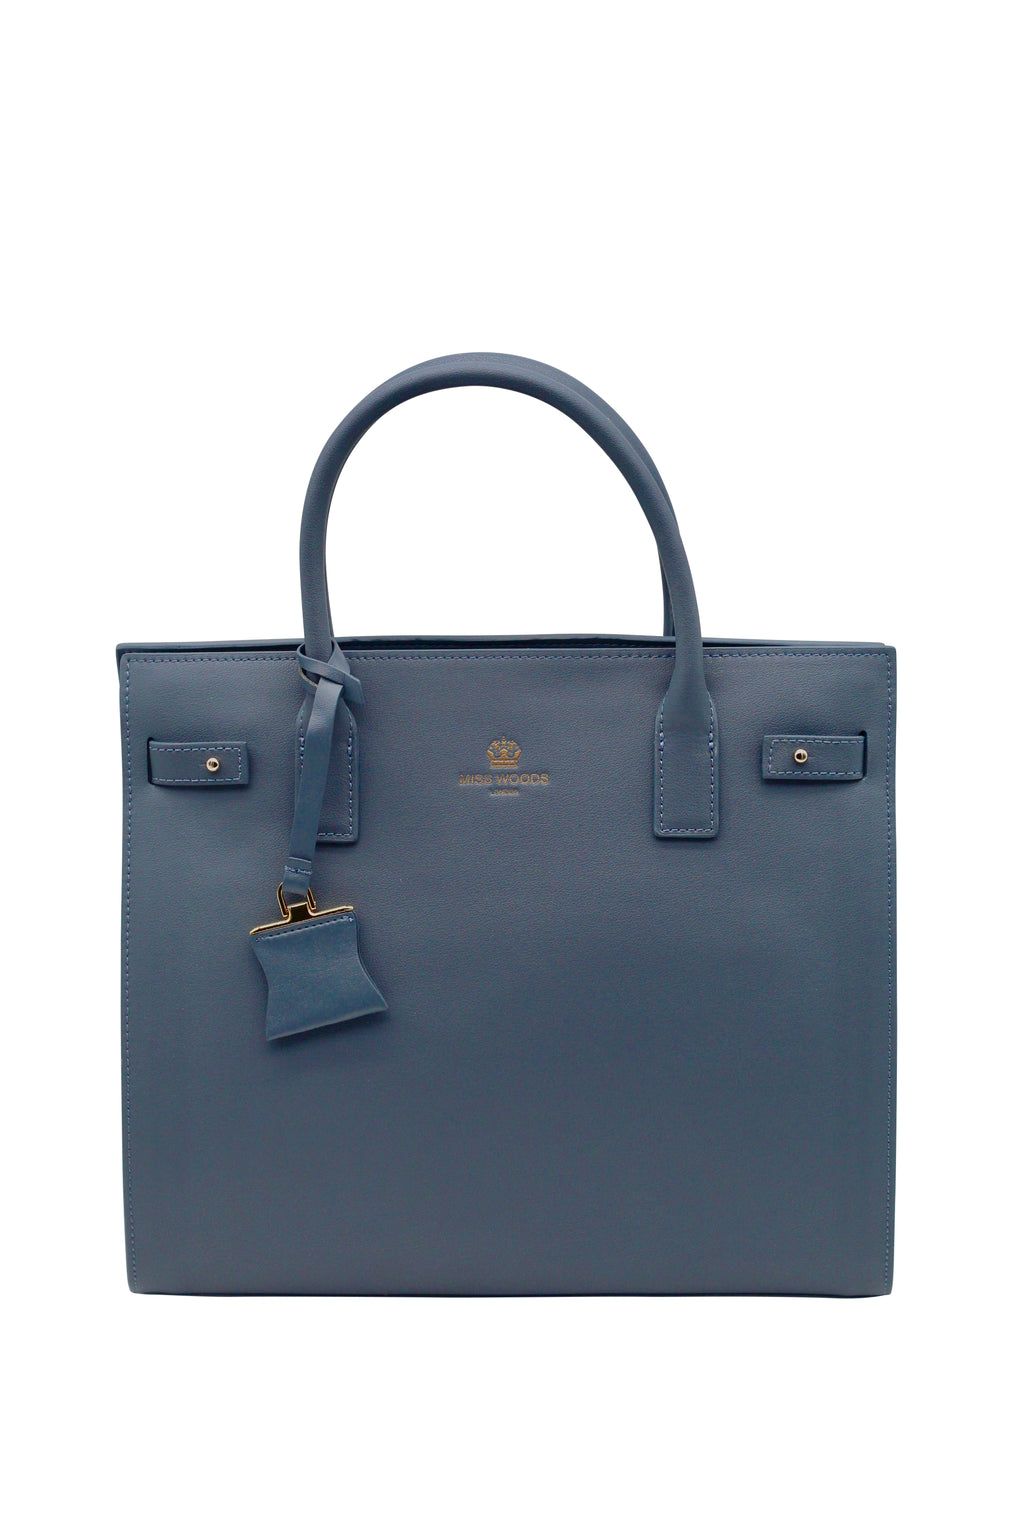 Miss Eleanor Grande Bag - Grey